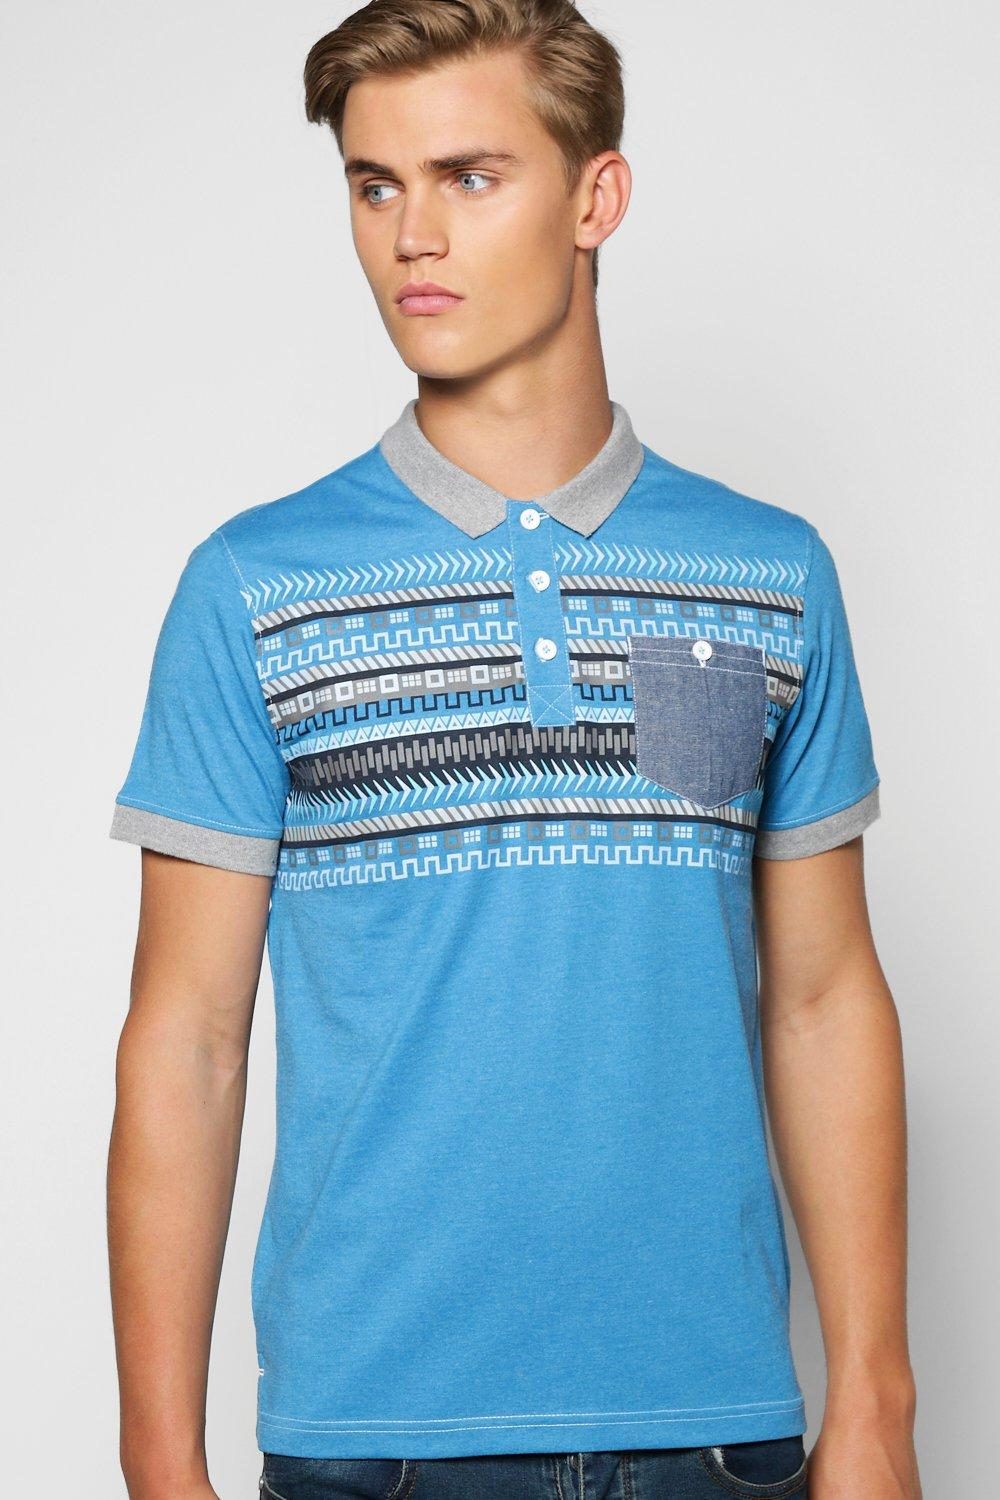 Chambray Pocket Aztec Polo